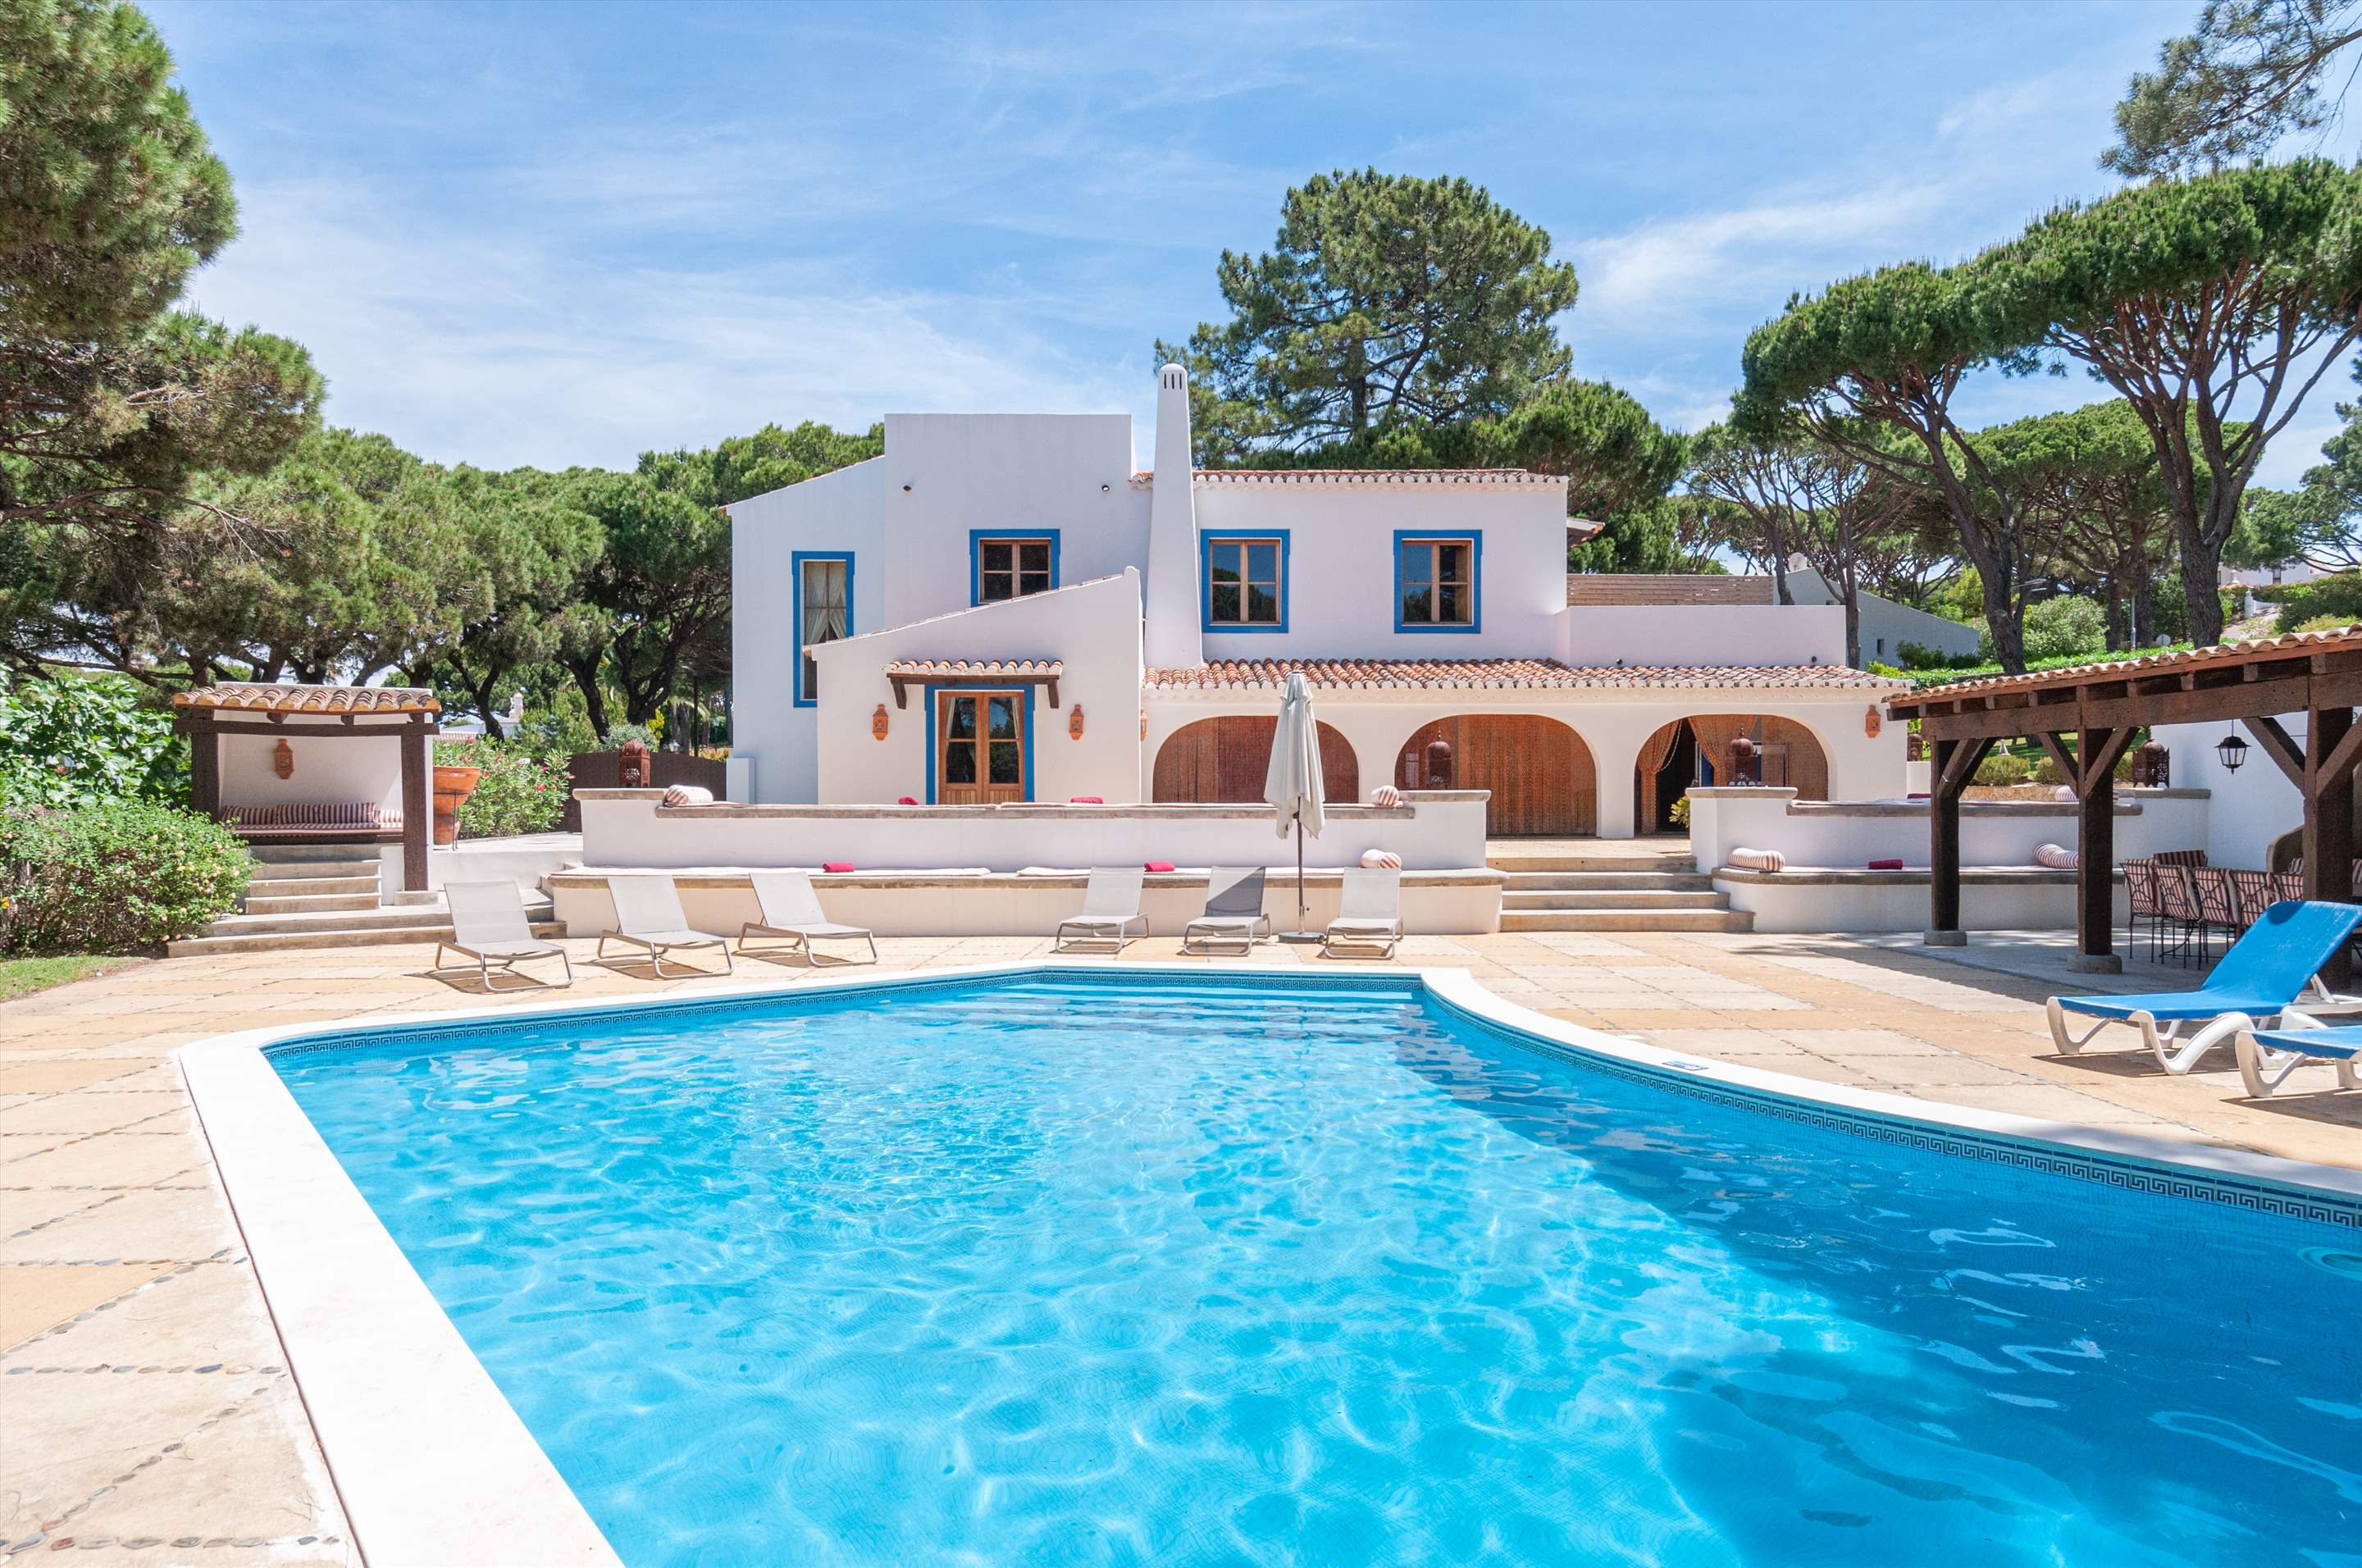 Villa Cristofina, 5 Bedroom, 5 bedroom villa in Vale do Lobo, Algarve